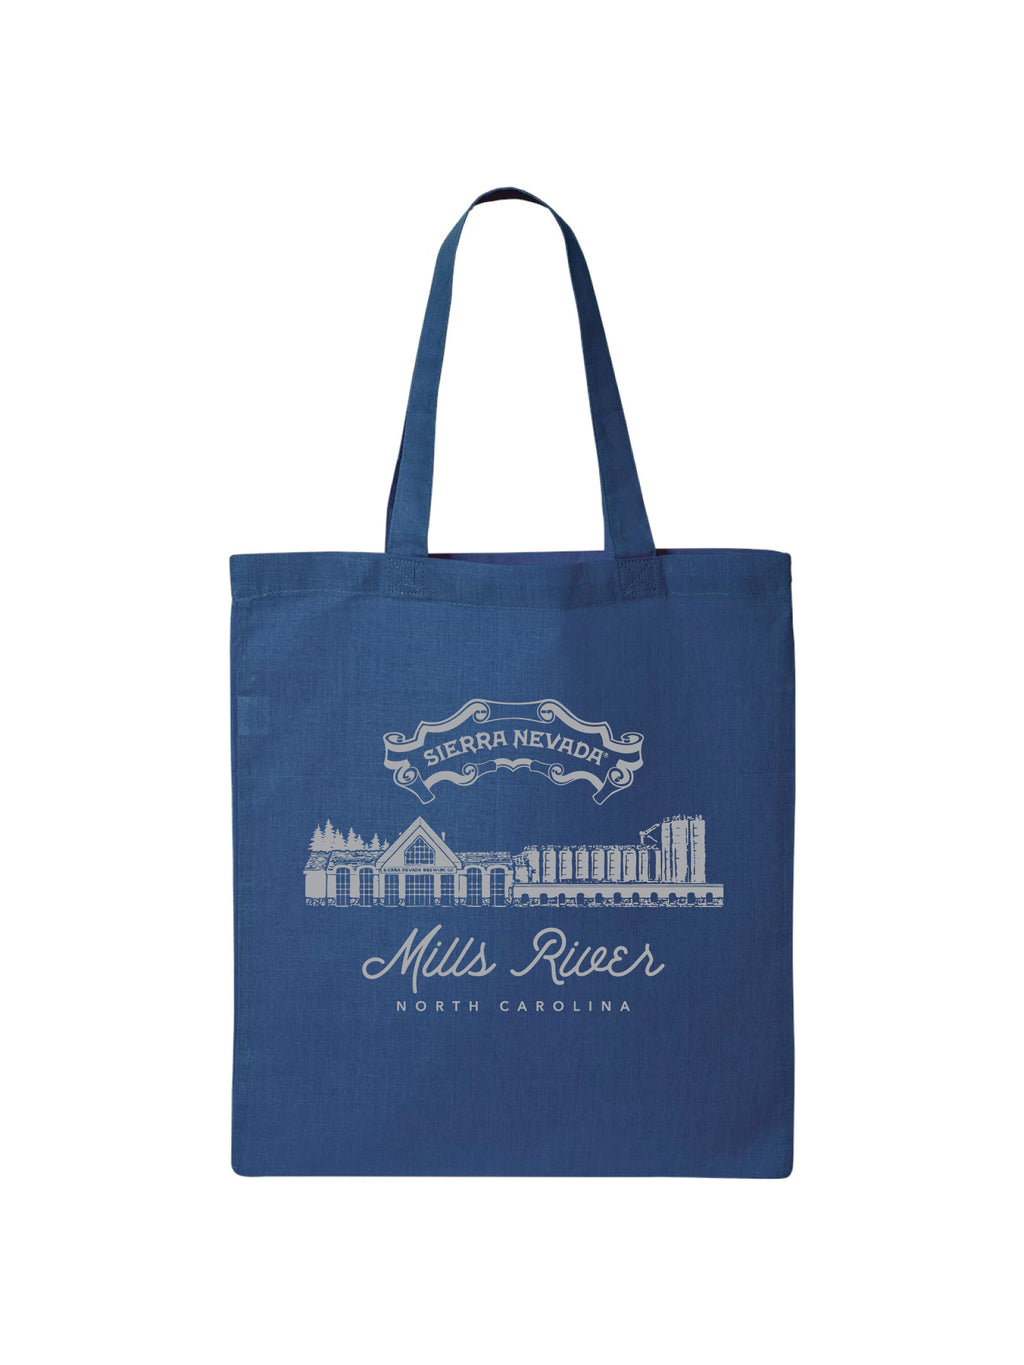 TOTE MILLS RIVER BAG- ROYAL